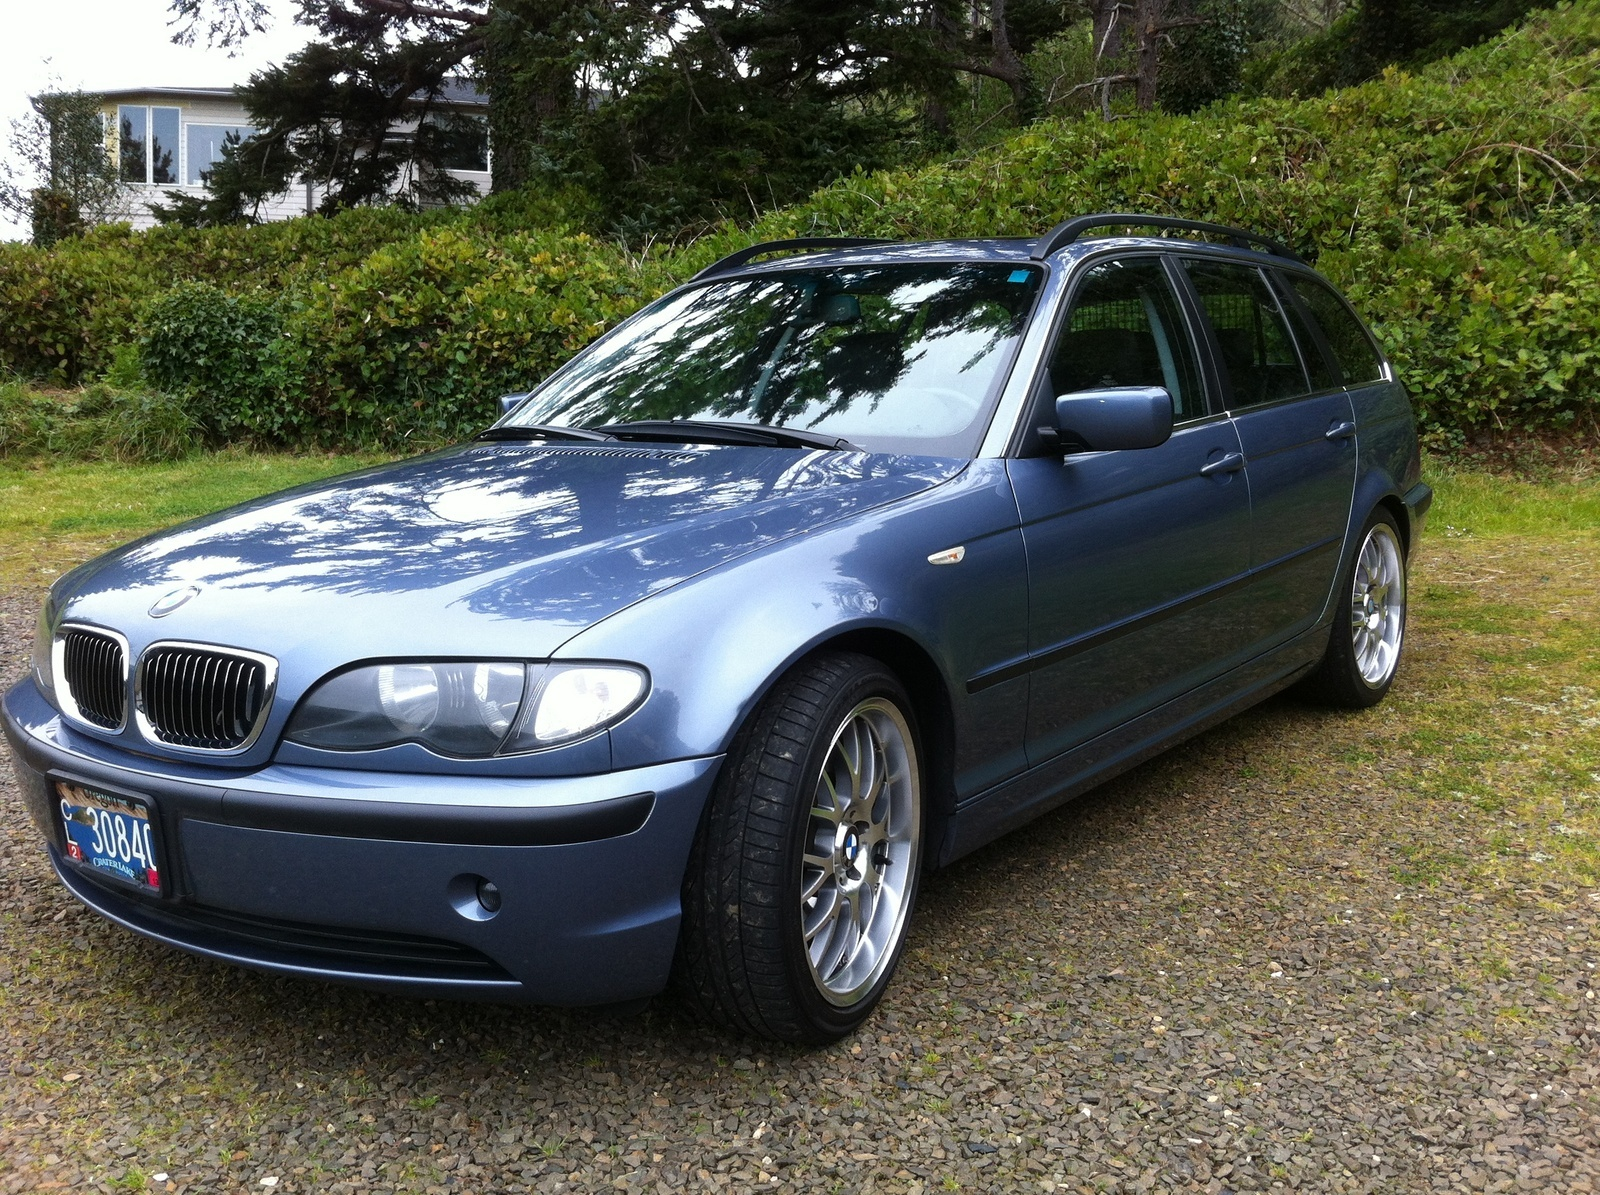 BMW Series Questions I Just Bought It Has Miles - Bmw 325i 2006 manual